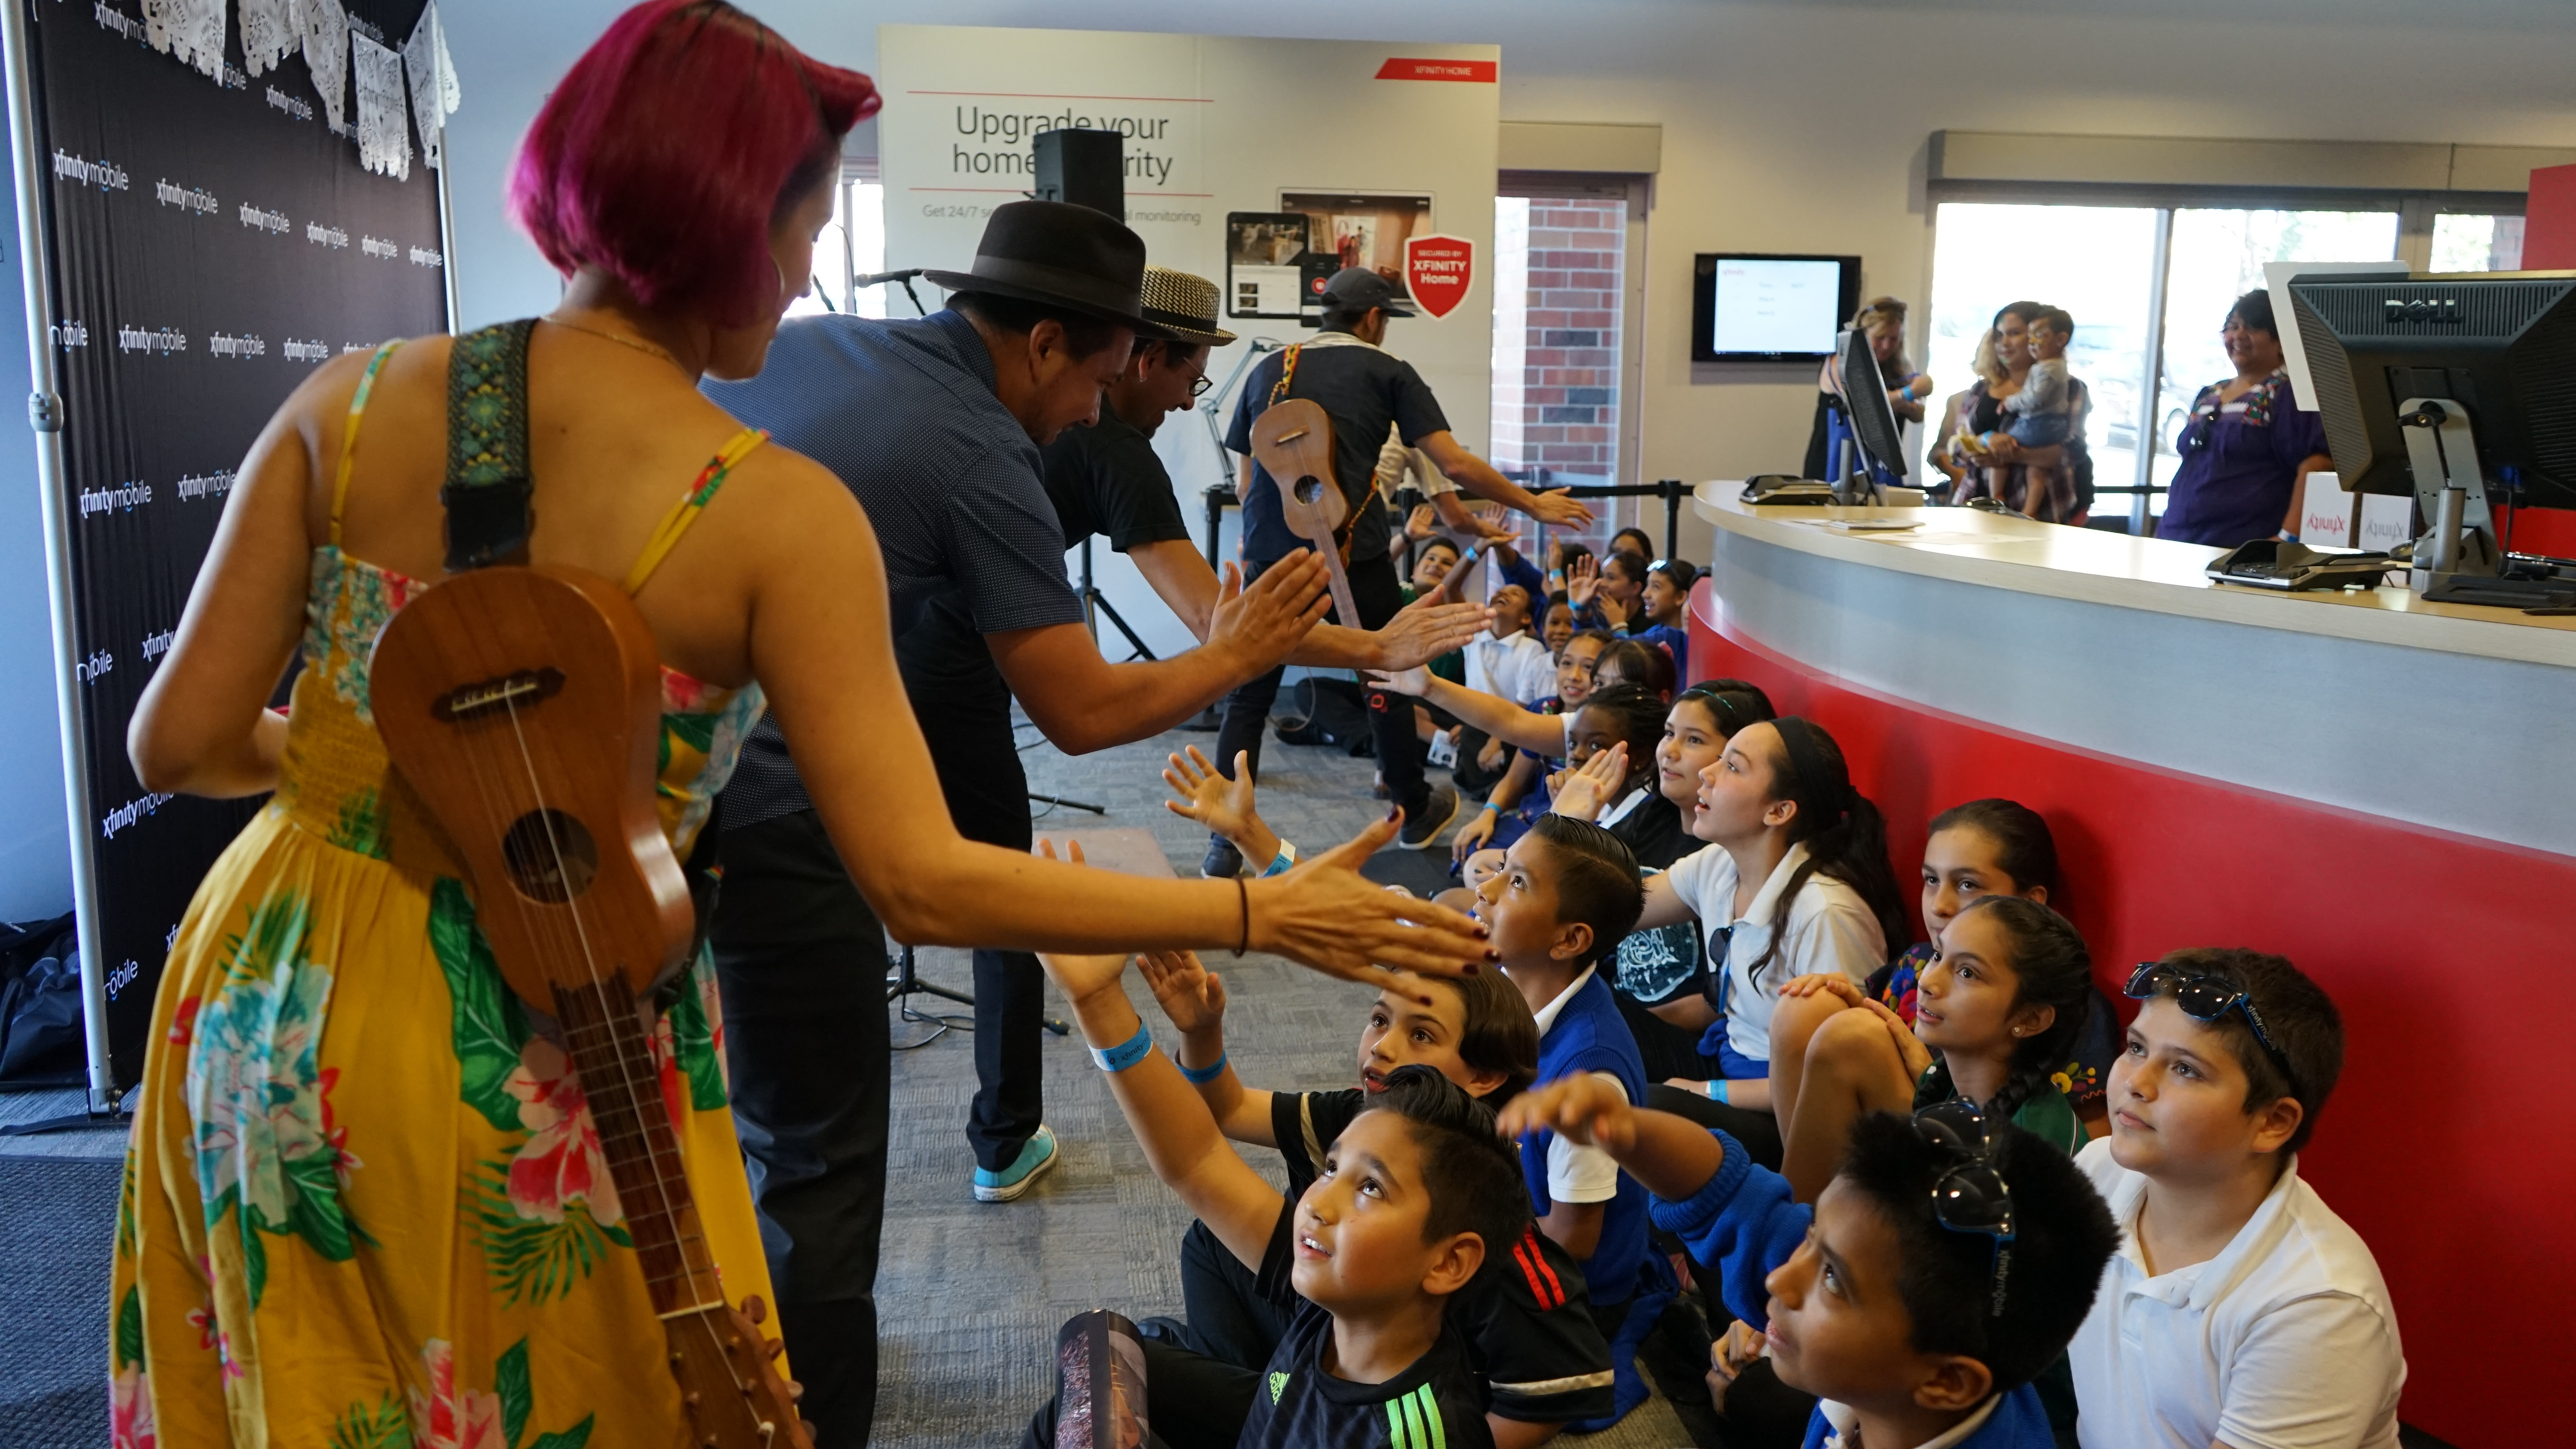 Free concerts and meet and greets with las cafeteras draw hundreds free concerts and meet and greets with las cafeteras draw hundreds of fans to three xfinity stores in california m4hsunfo